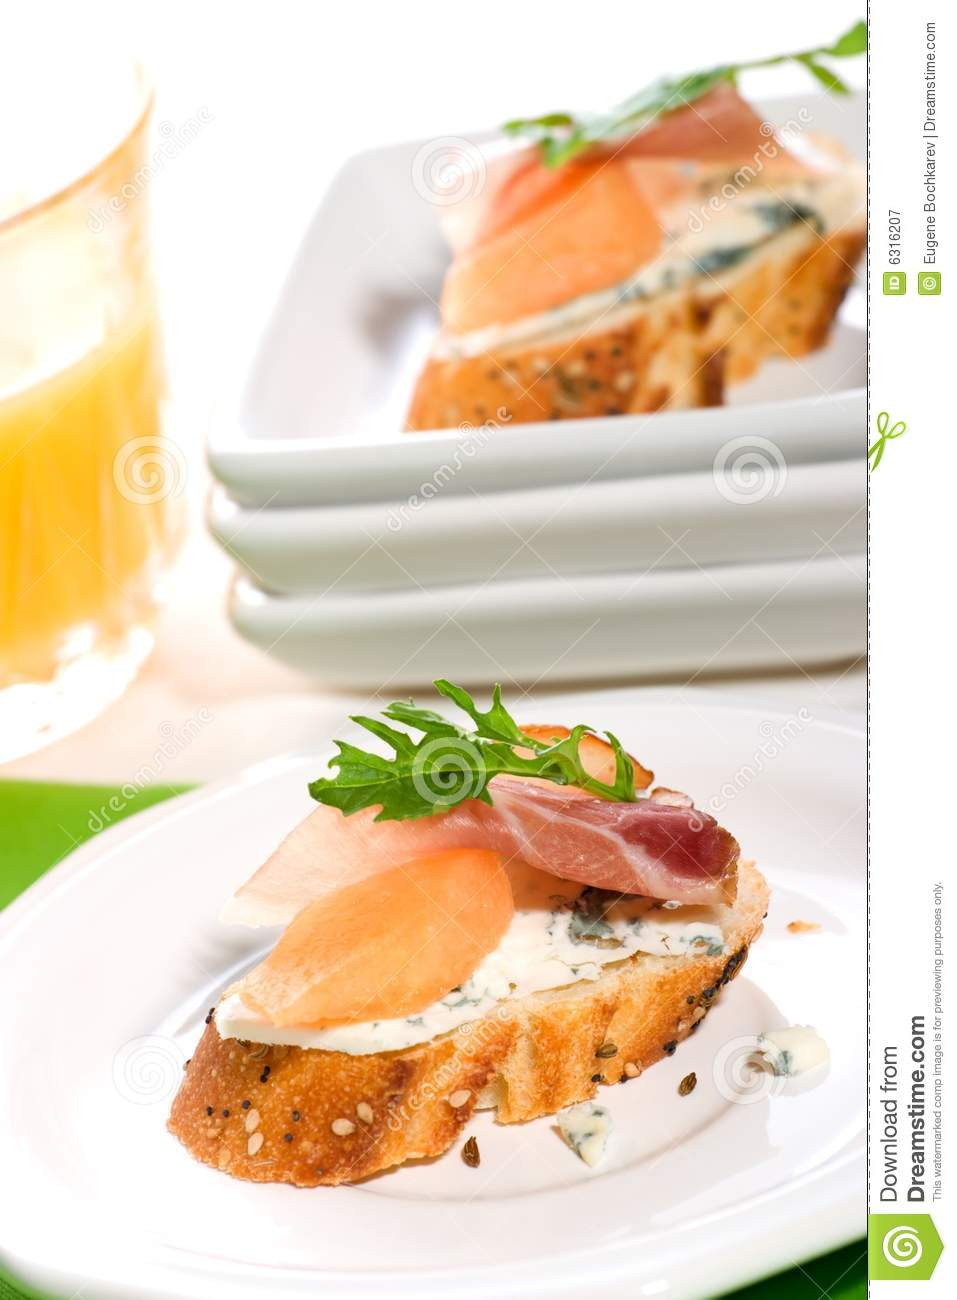 Prosciutto and blue cheese canapes royalty free stock for Prosciutto and melon canape